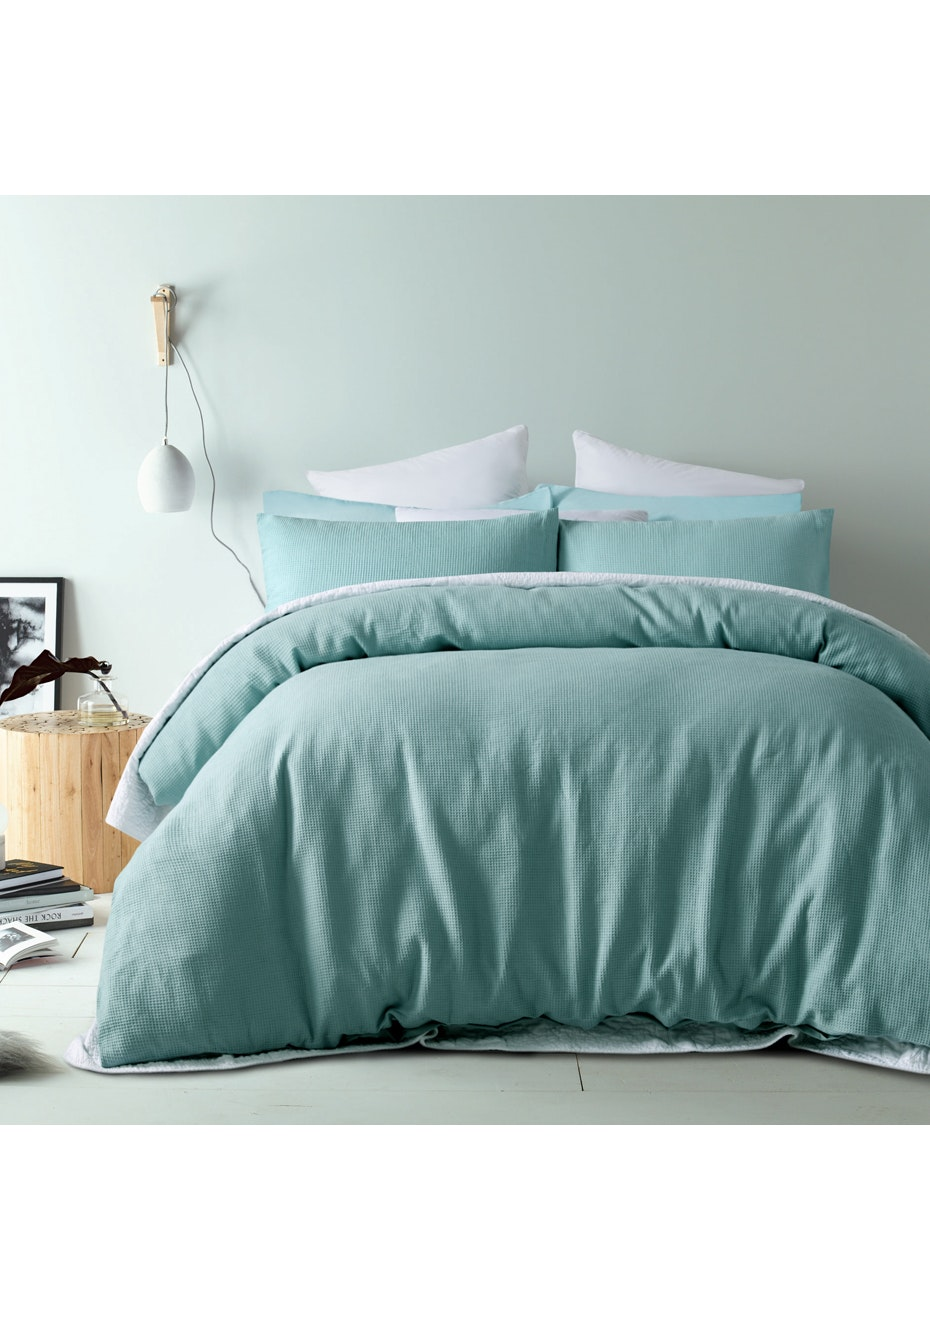 Ocean Breeze Waffle Linen Cotton Quilt Cover Set- Queen Bed